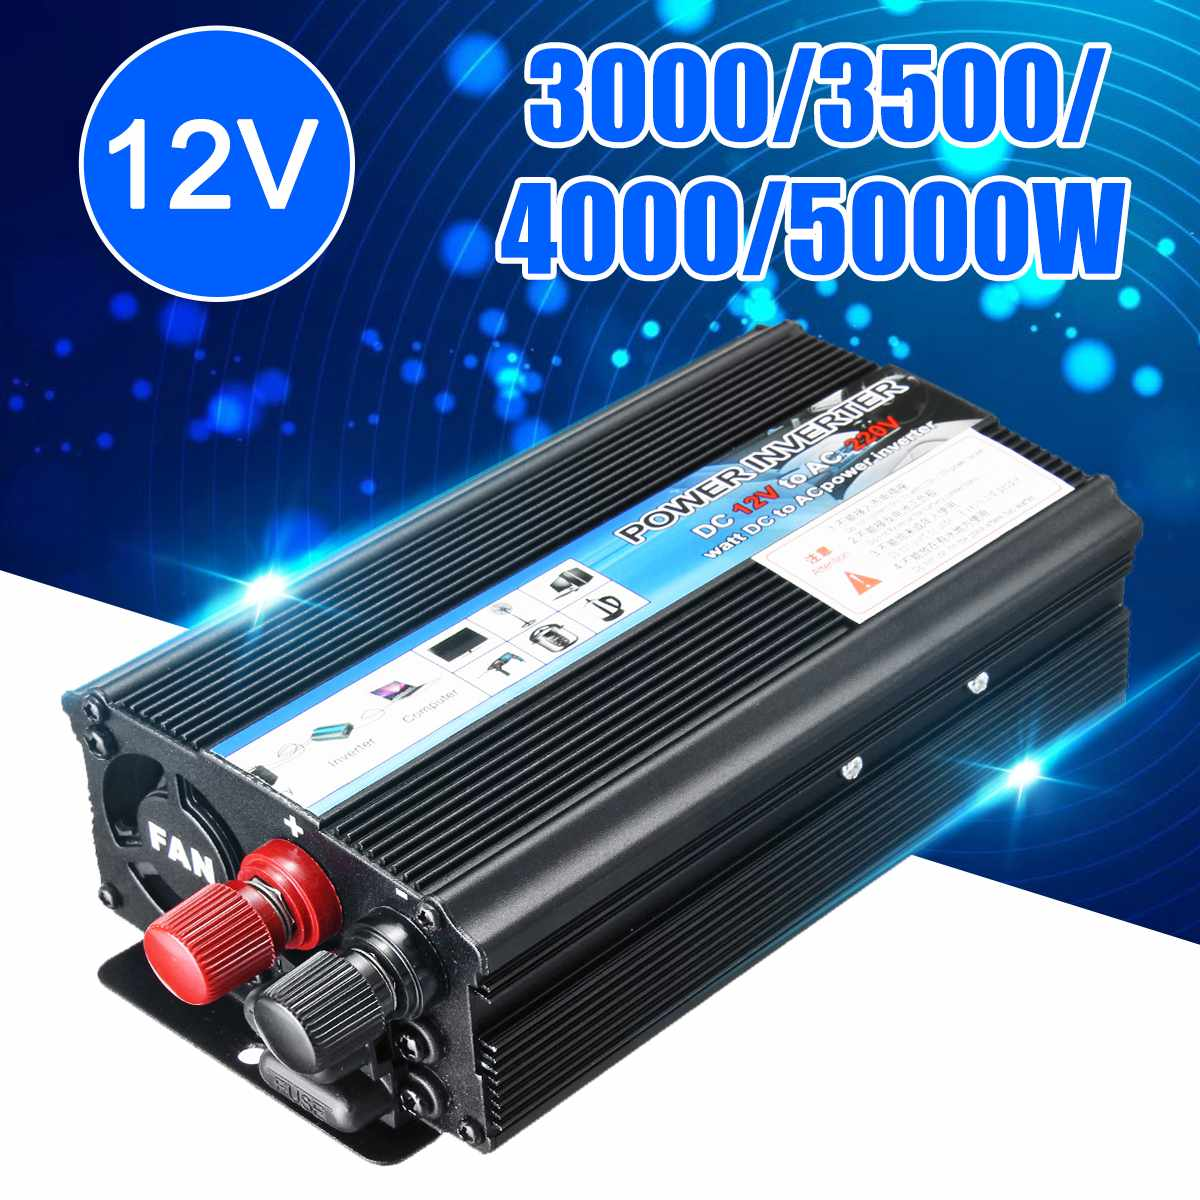 DC 12V to AC 220V Inverter MAX 5000W Watt Portable Car Power USB Inverter Charger Converter Adapter Modified Sine Wave